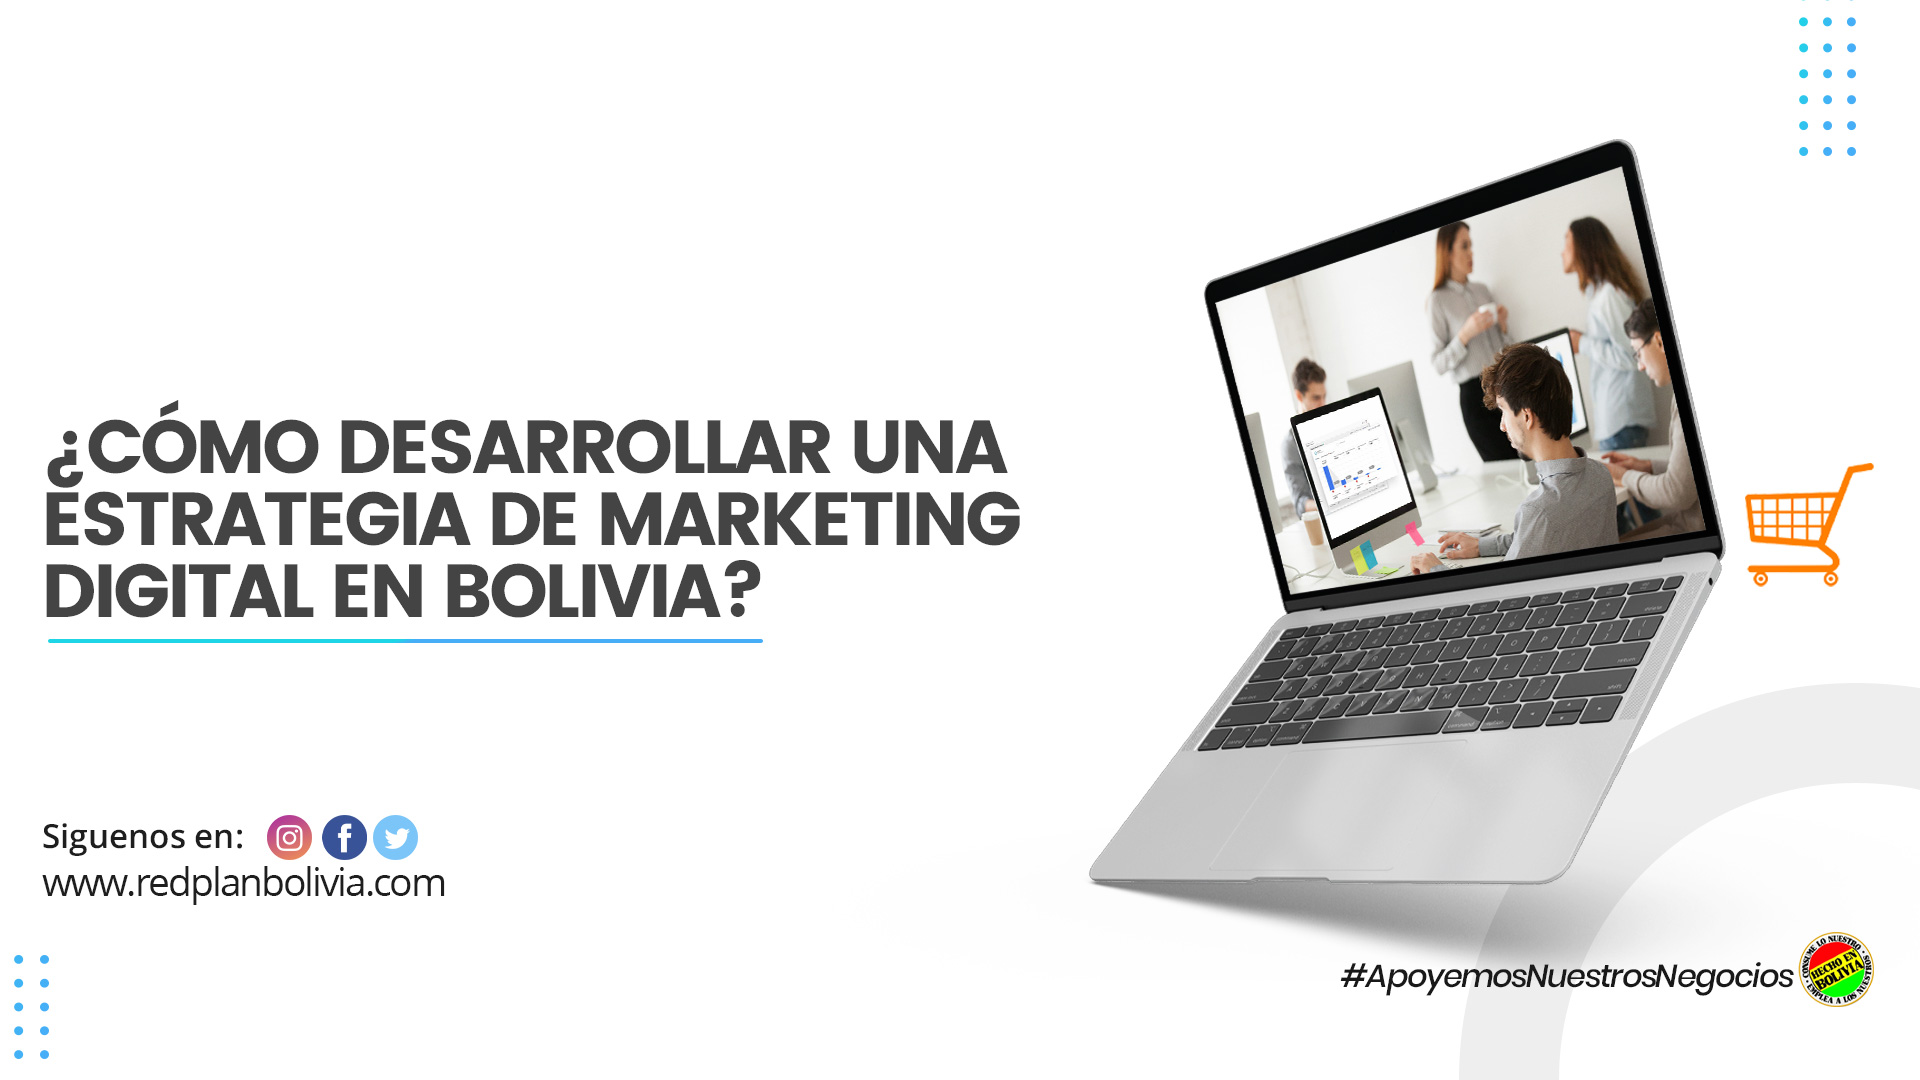 Cómo desarrollar una estrategia de marketing digital en Bolivia